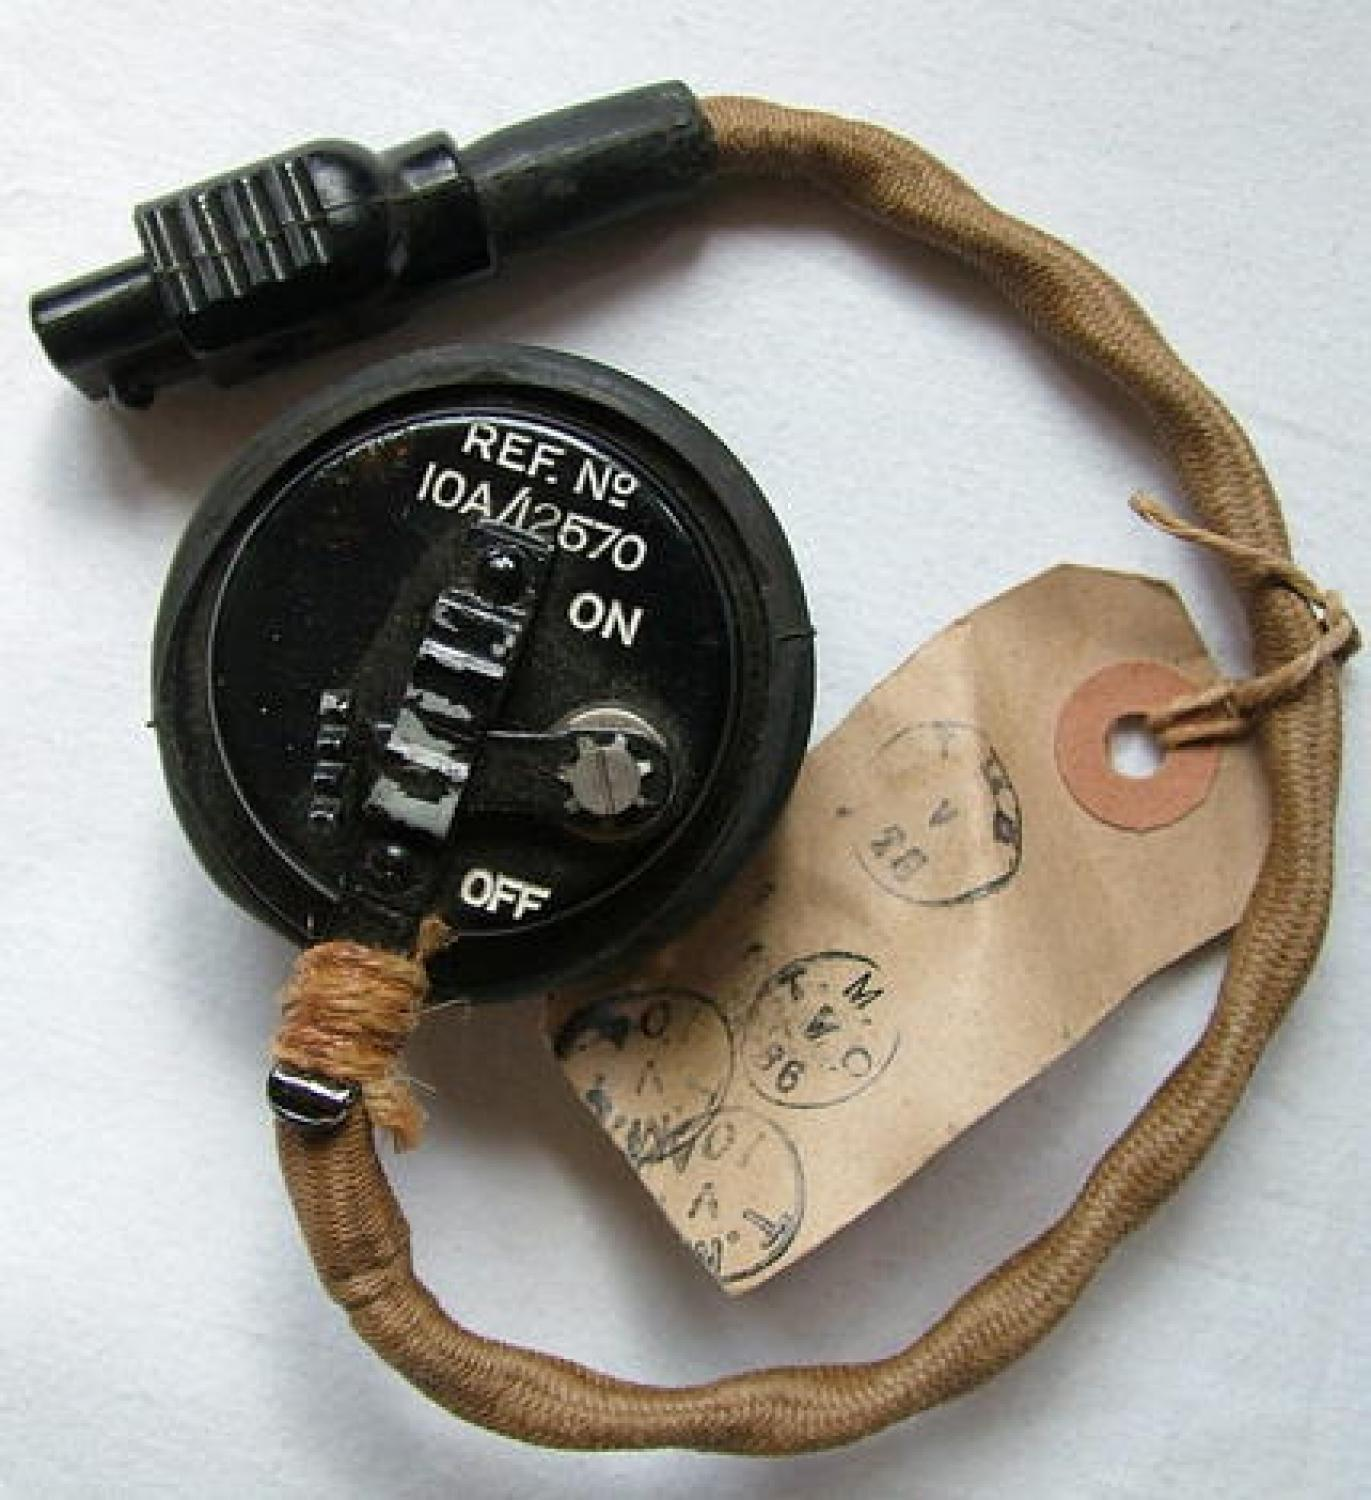 R.A.F. Type 48 Microphone Assembly